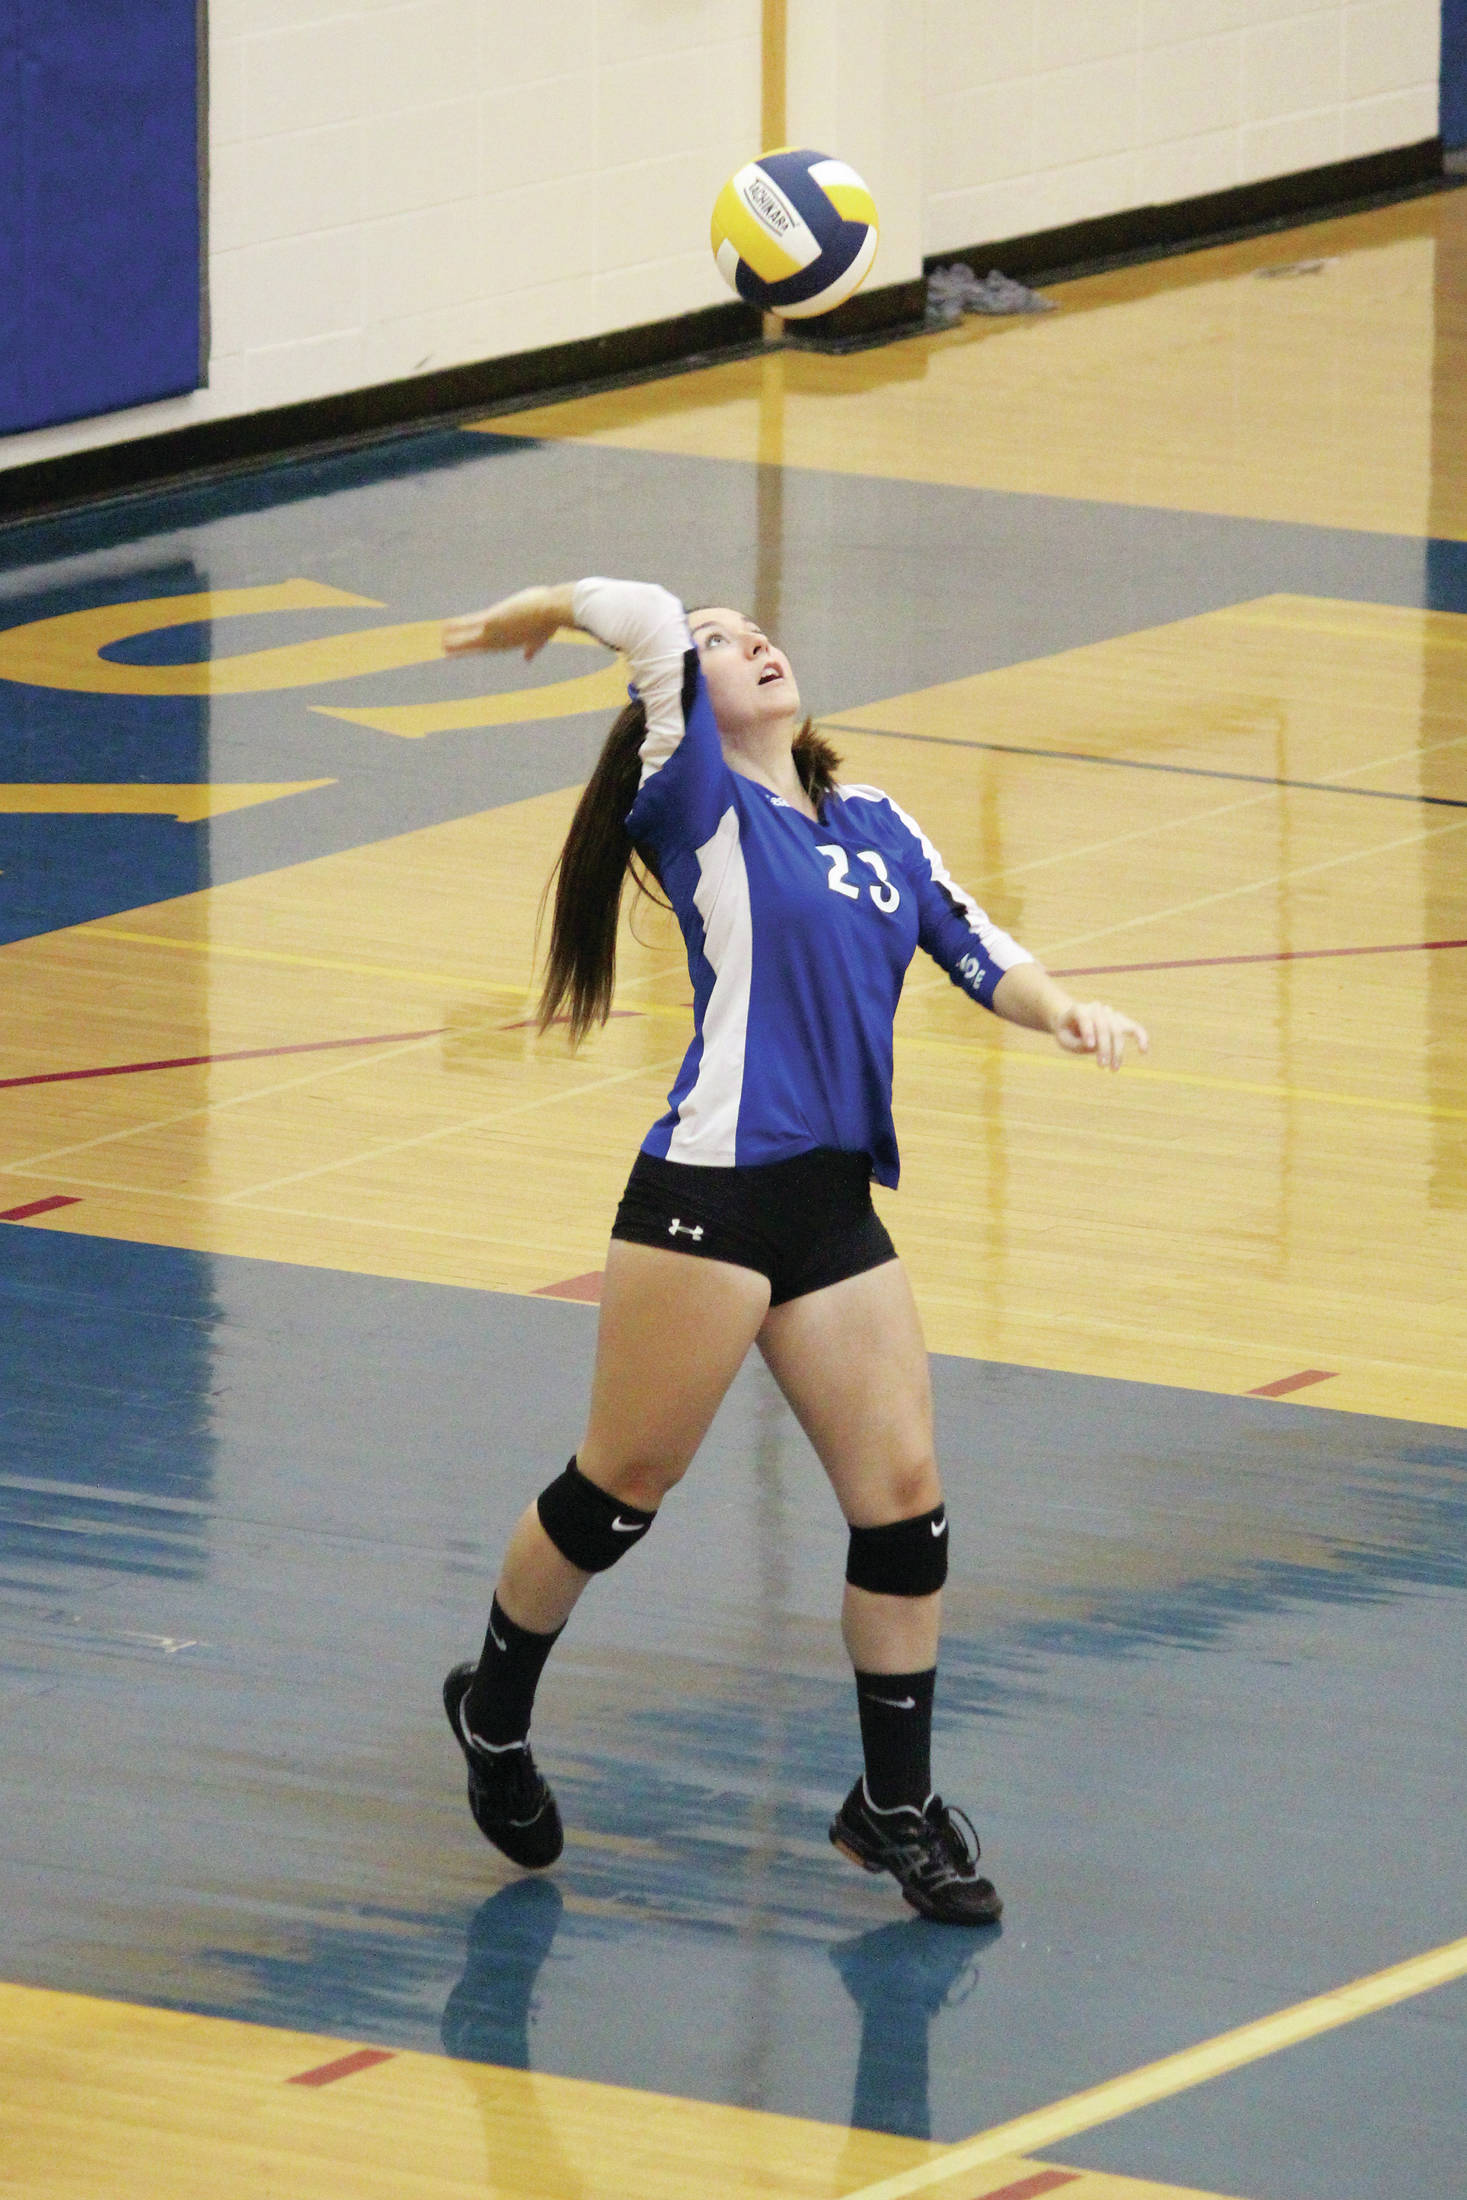 Palmer's Aurora Davidson serves the ball during a Thursday, Sept. 12, 2019 volleyball game against Homer High School at the Alice Witte Gymnasium in Homer, Alaska. (Photo by Megan Pacer/Homer News)